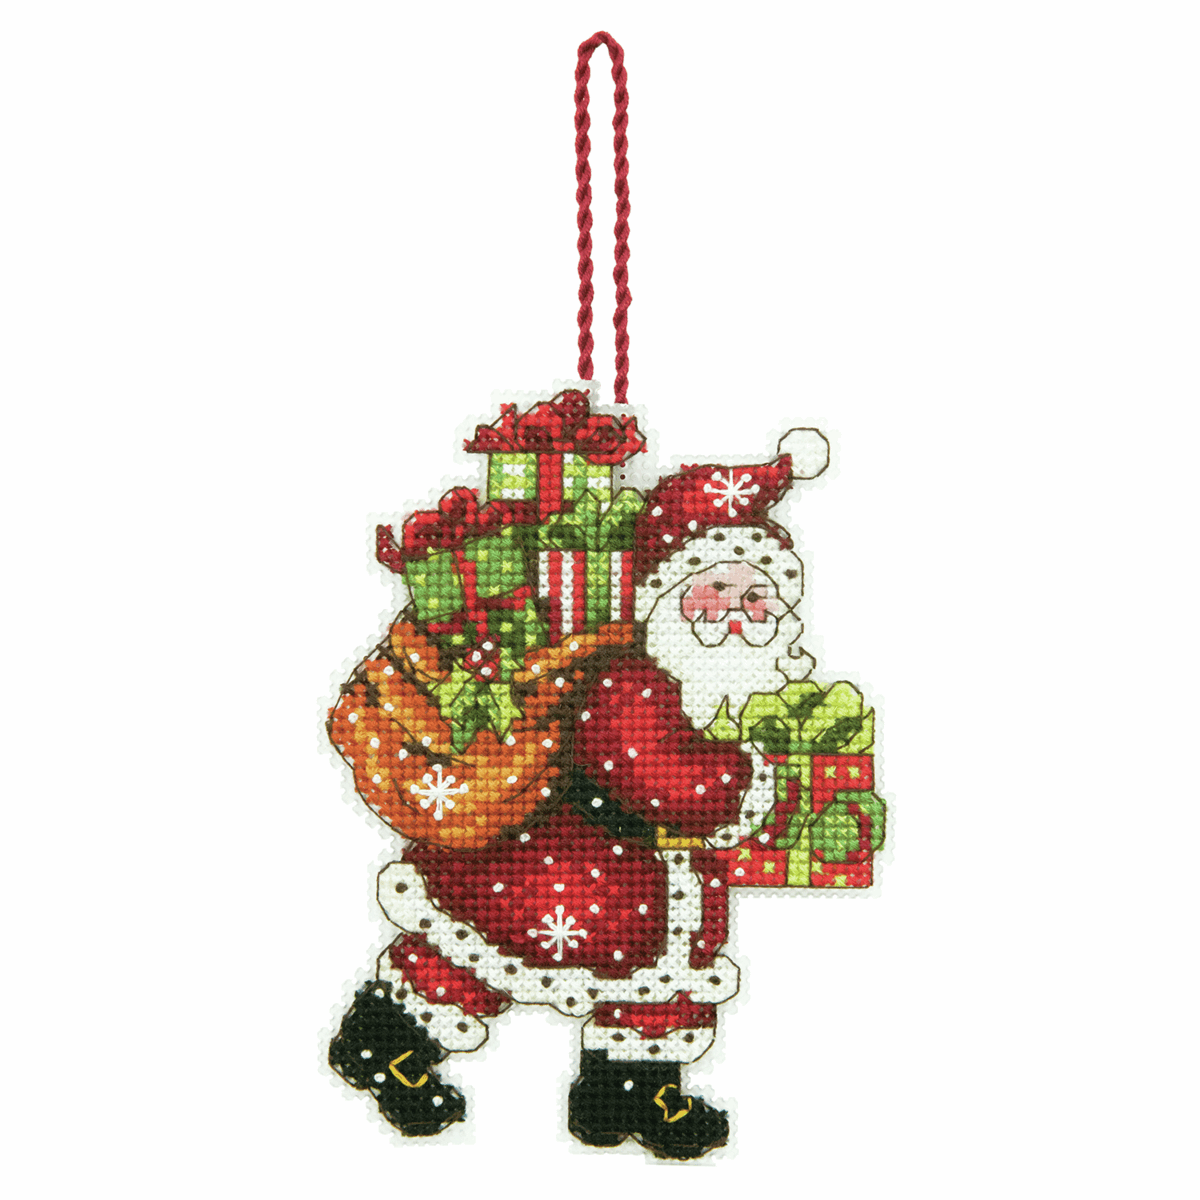 Picture of Counted Cross Stitch Kit: Ornament: Santa with Bag